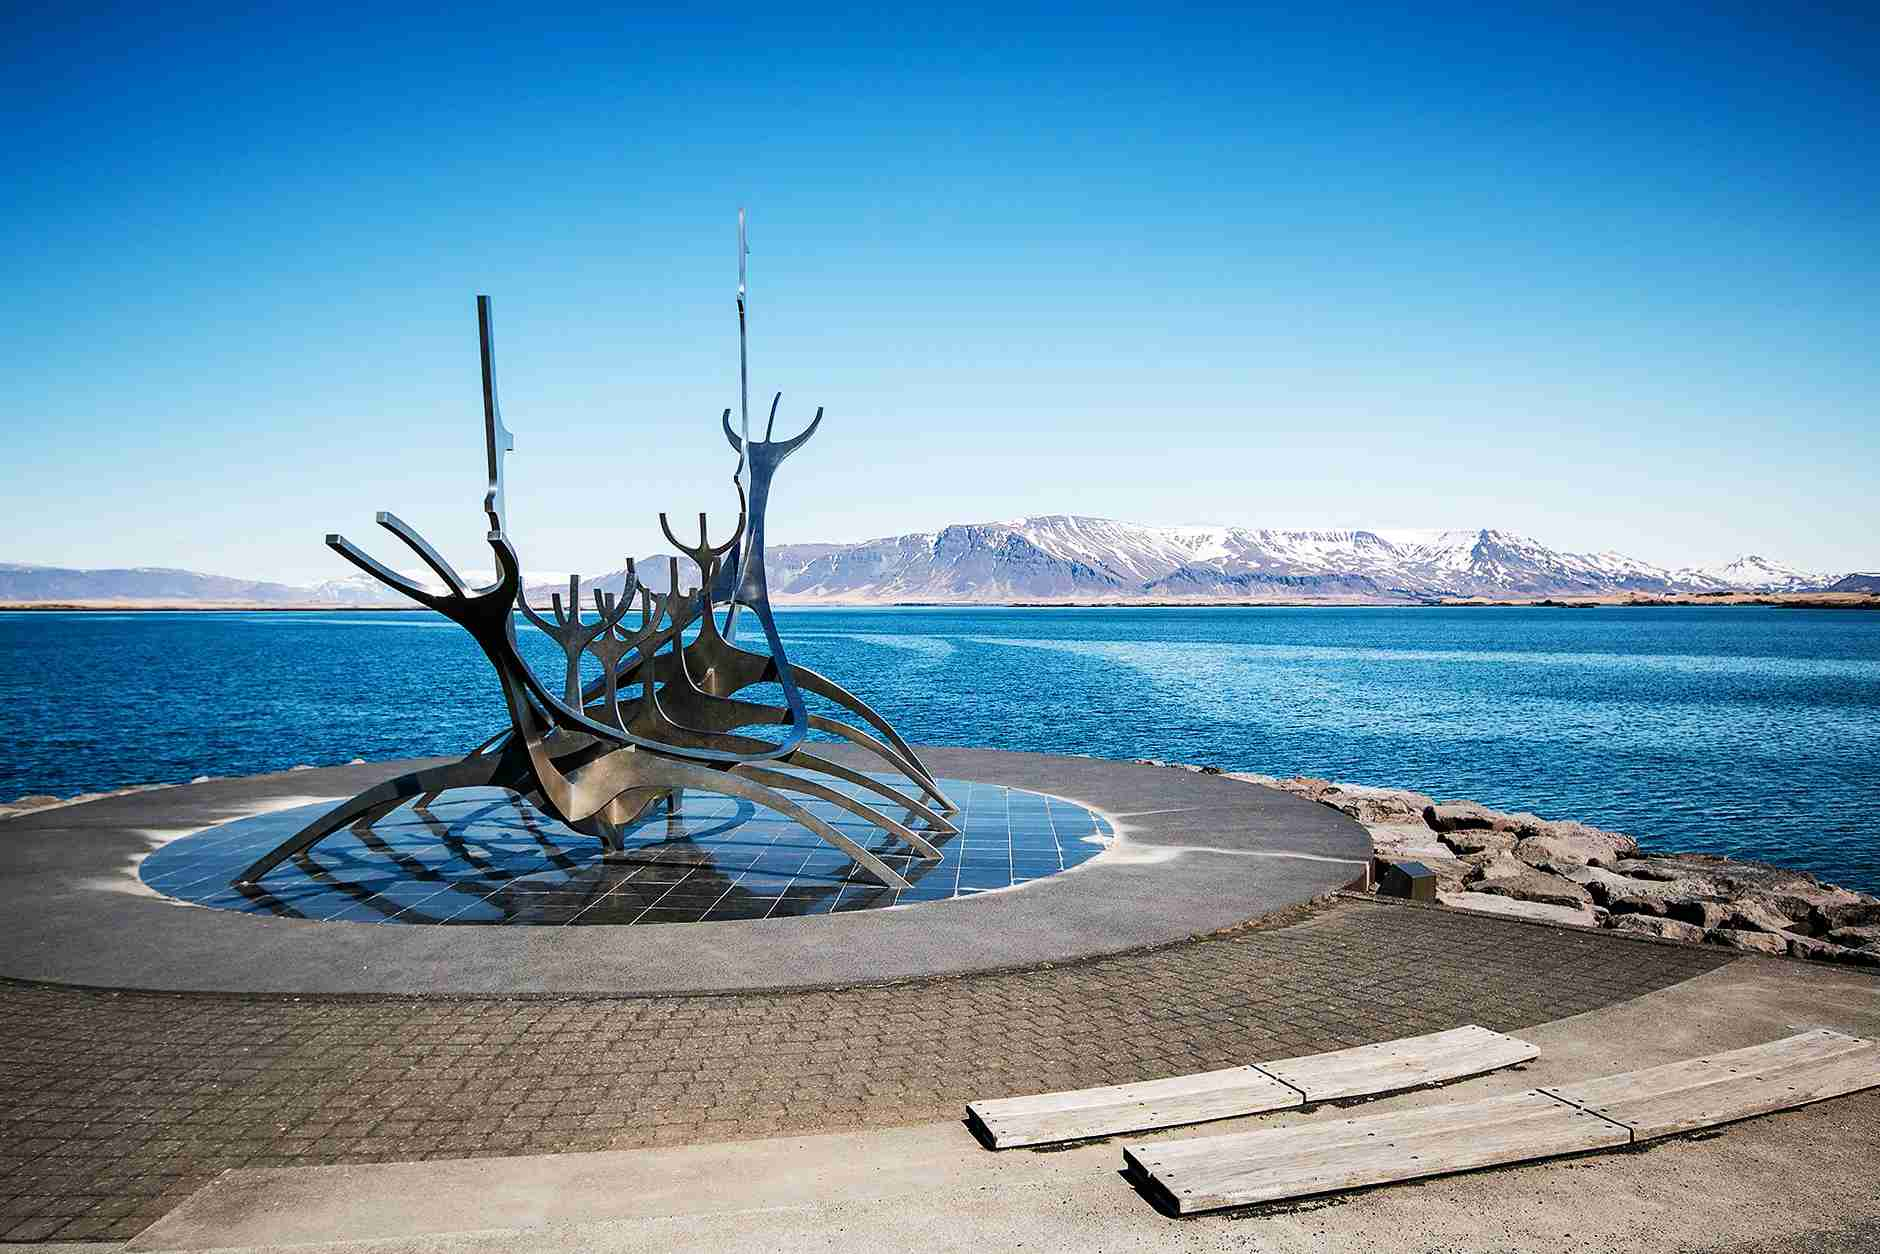 The Sun Voyager statue on the Reykjavik waterfront